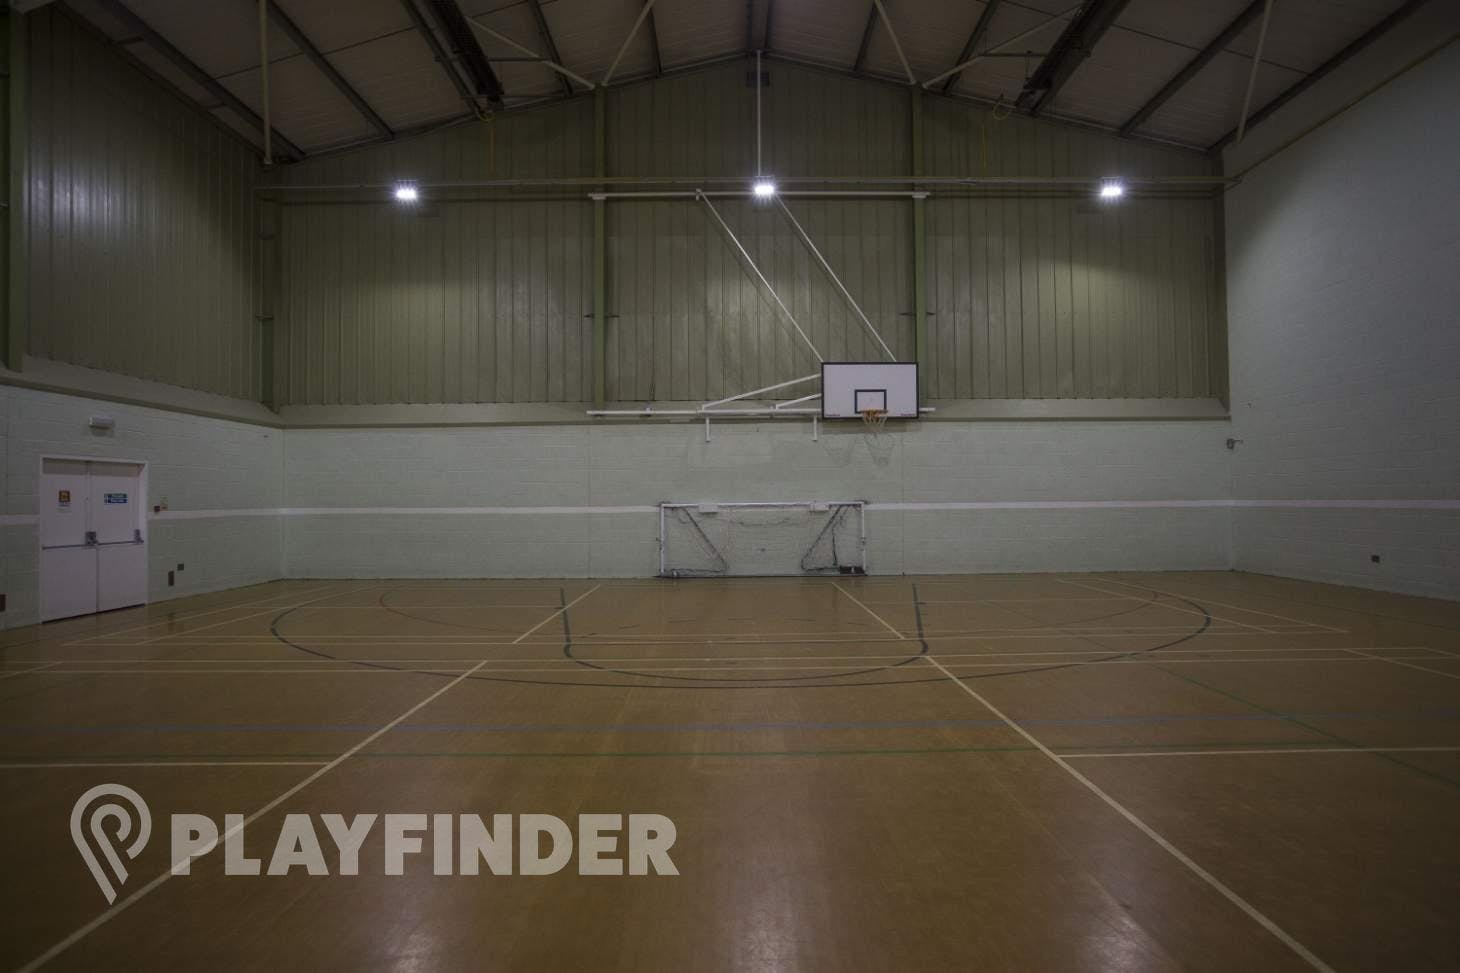 Redbourn Leisure Centre Indoor | Hard badminton court